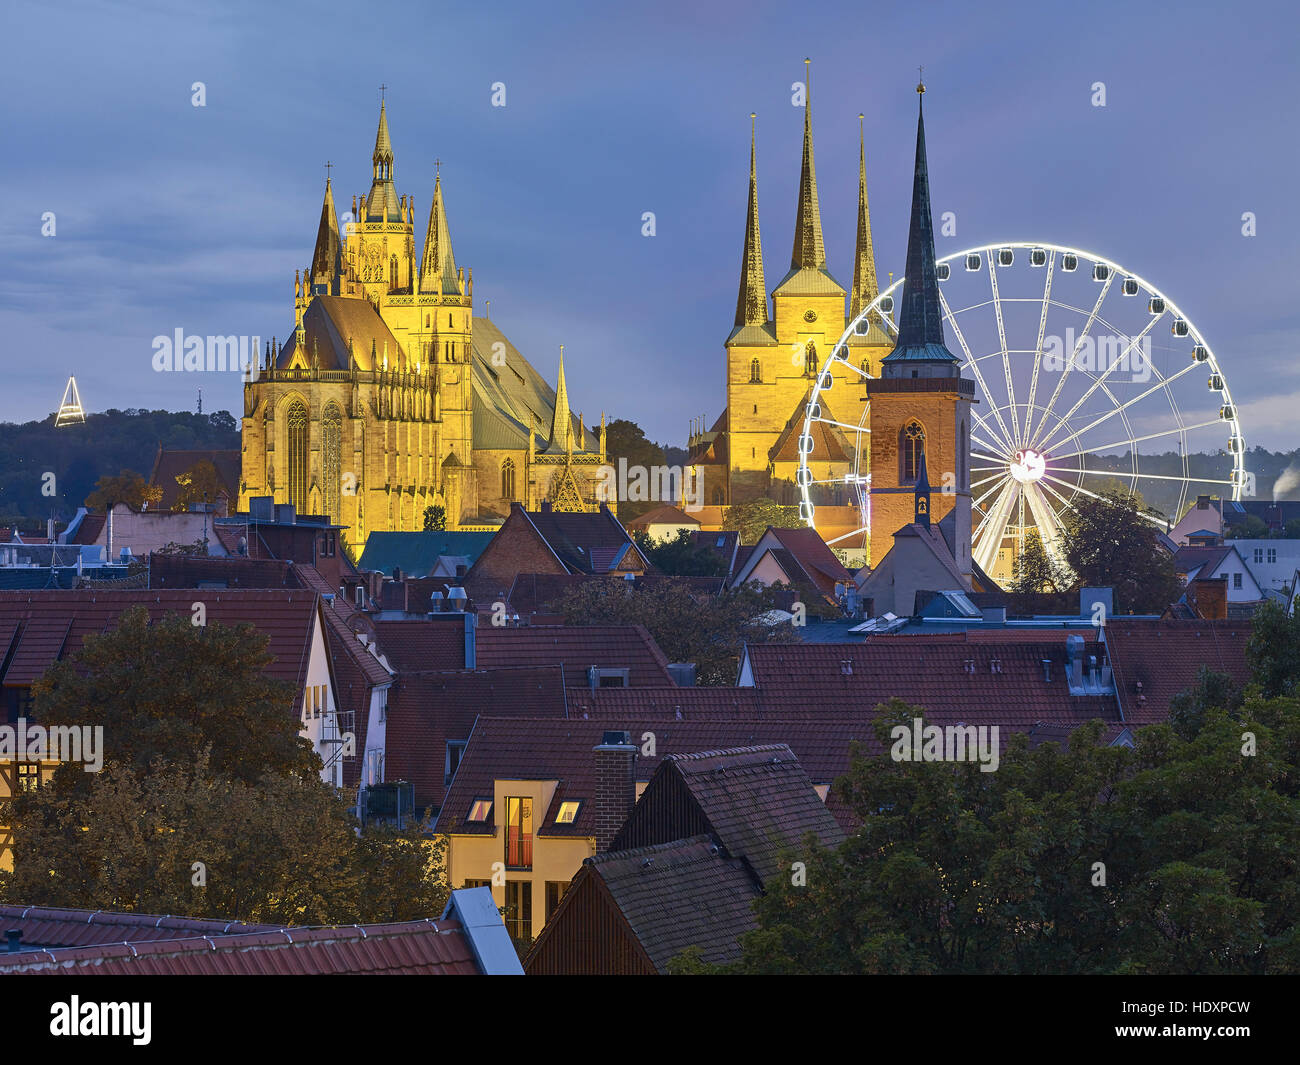 View over Erfurt with Ferris wheel, Cathedral and Severi church, Oktoberfest, Thuringia, Germany - Stock Image